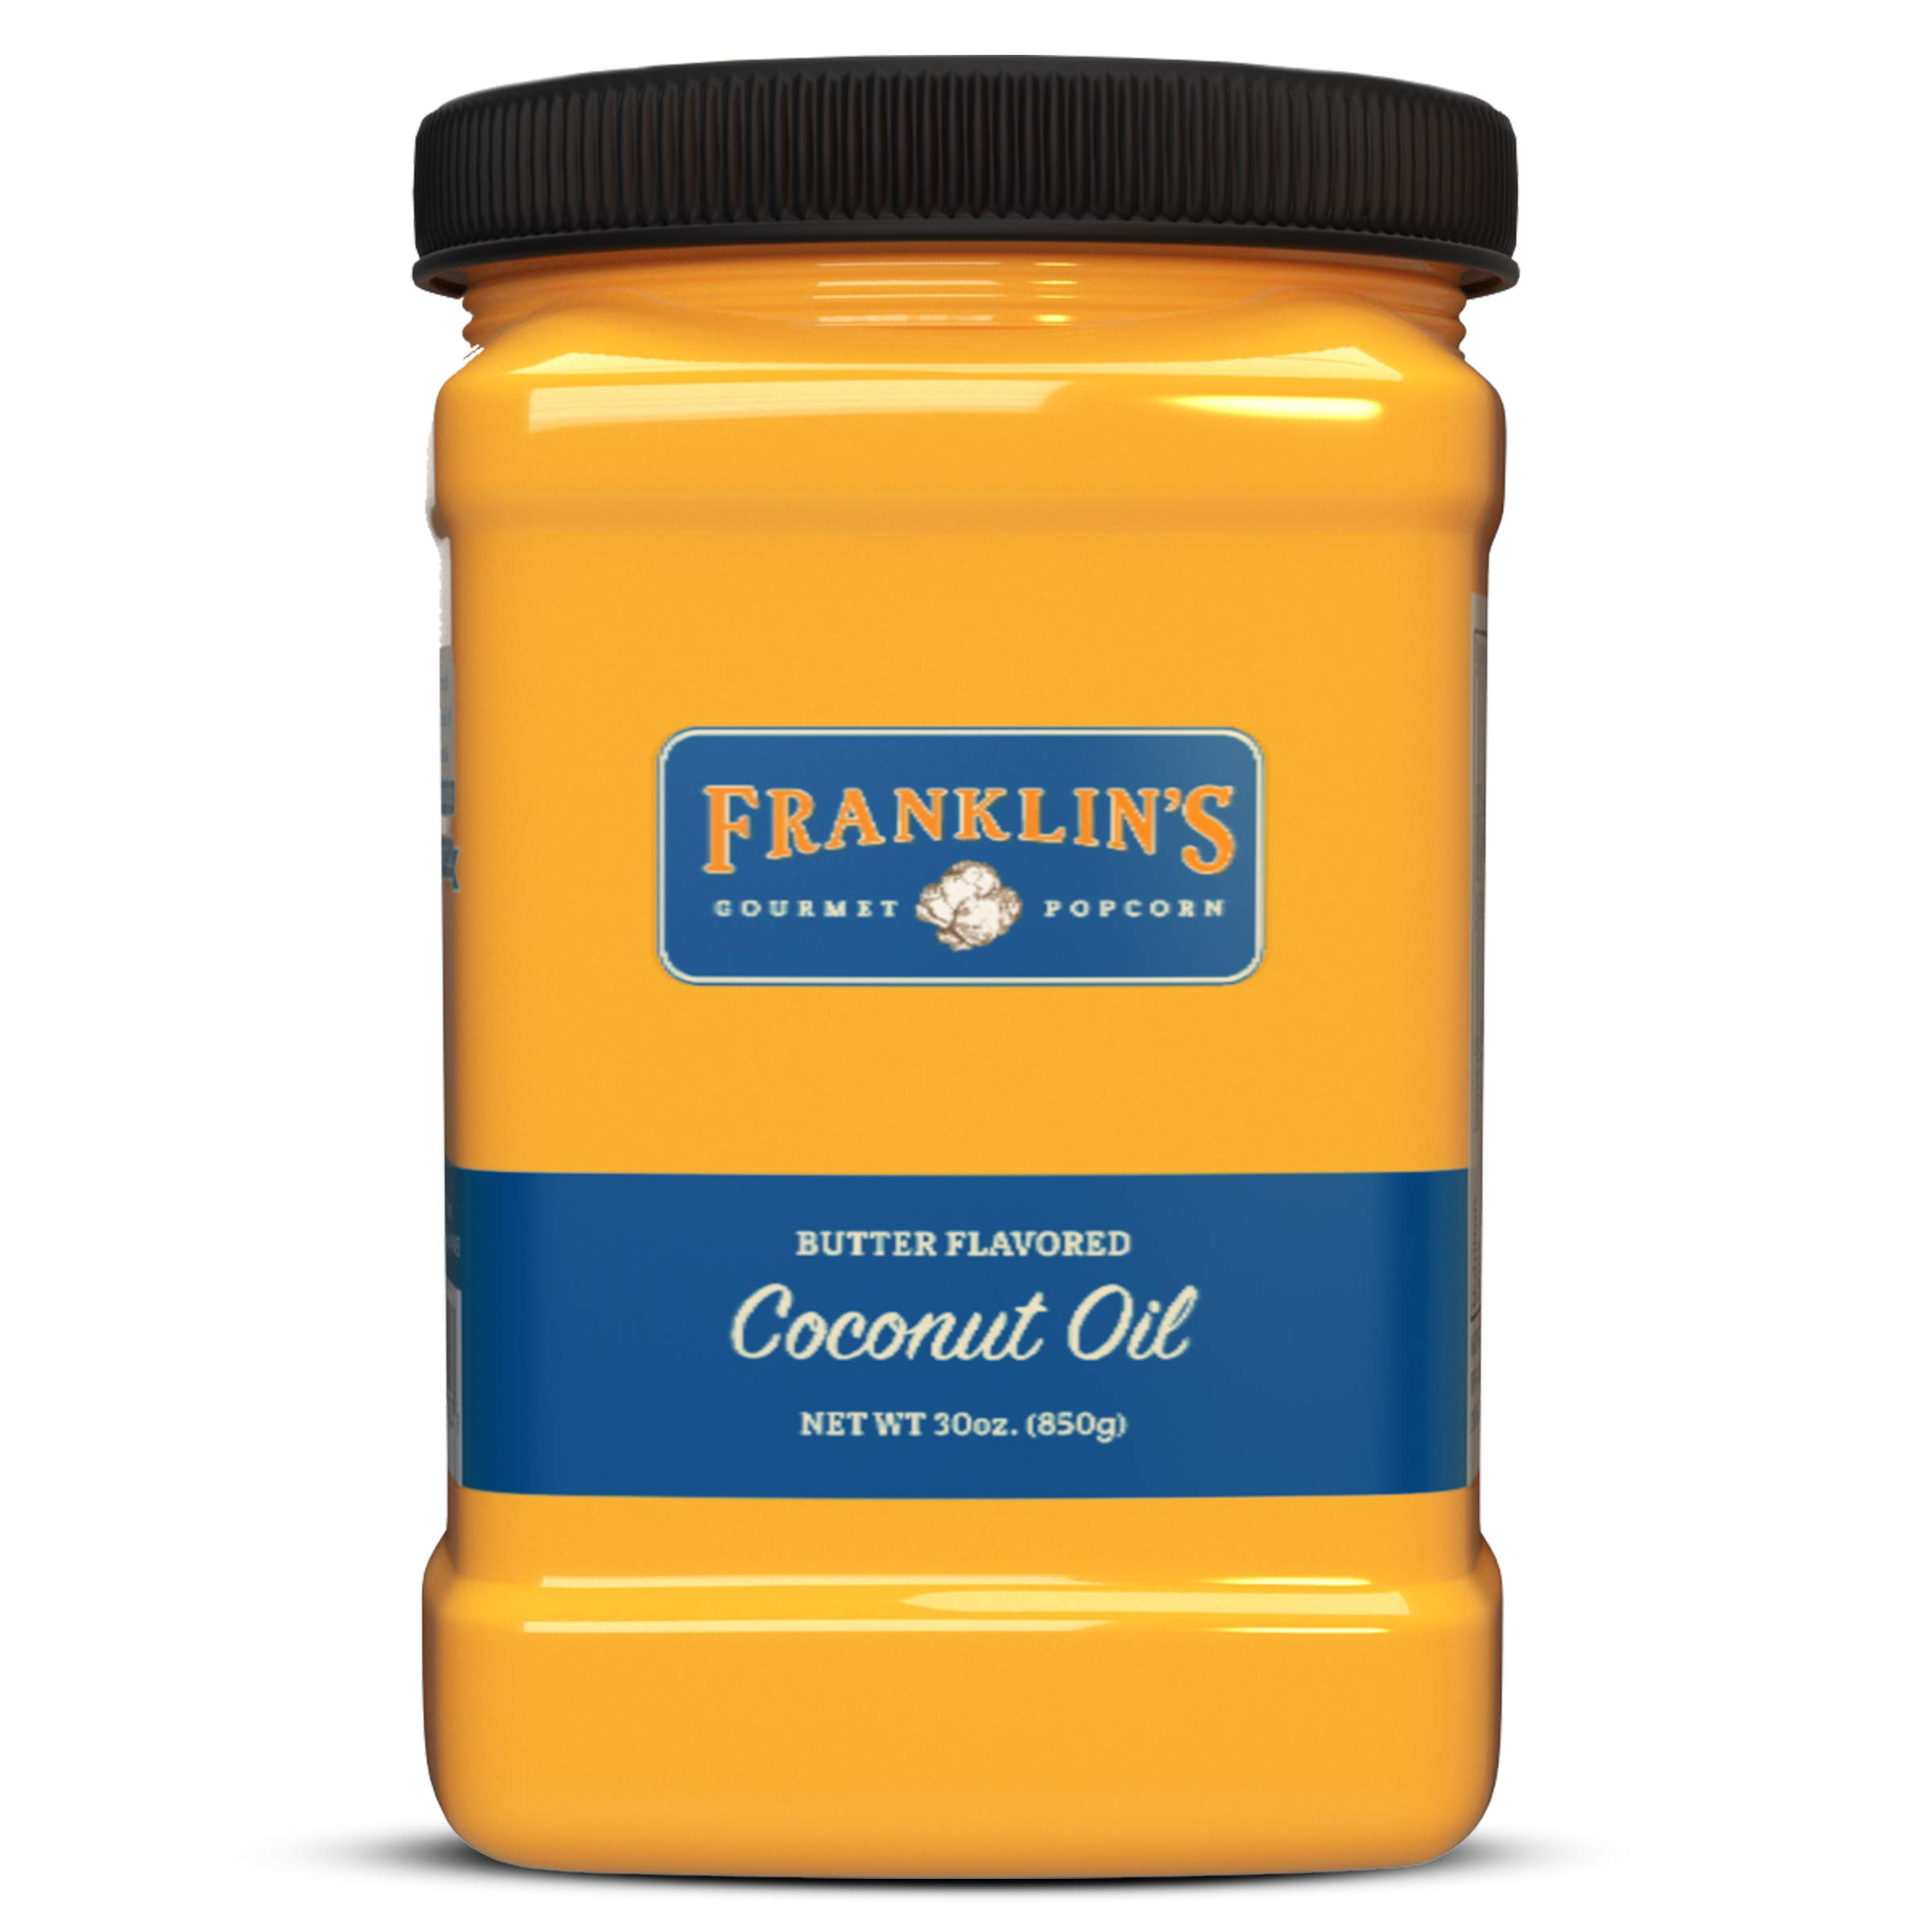 Franklin's Gourmet Popcorn Butter Flavored Coconut Oil - 30 oz. Tub - Top Rated, Delicious, Healthy, Zero Trans Fat - Gluten Free/Vegan & NO Junky Ingredients - Best Movie Theater Taste – Made in USA